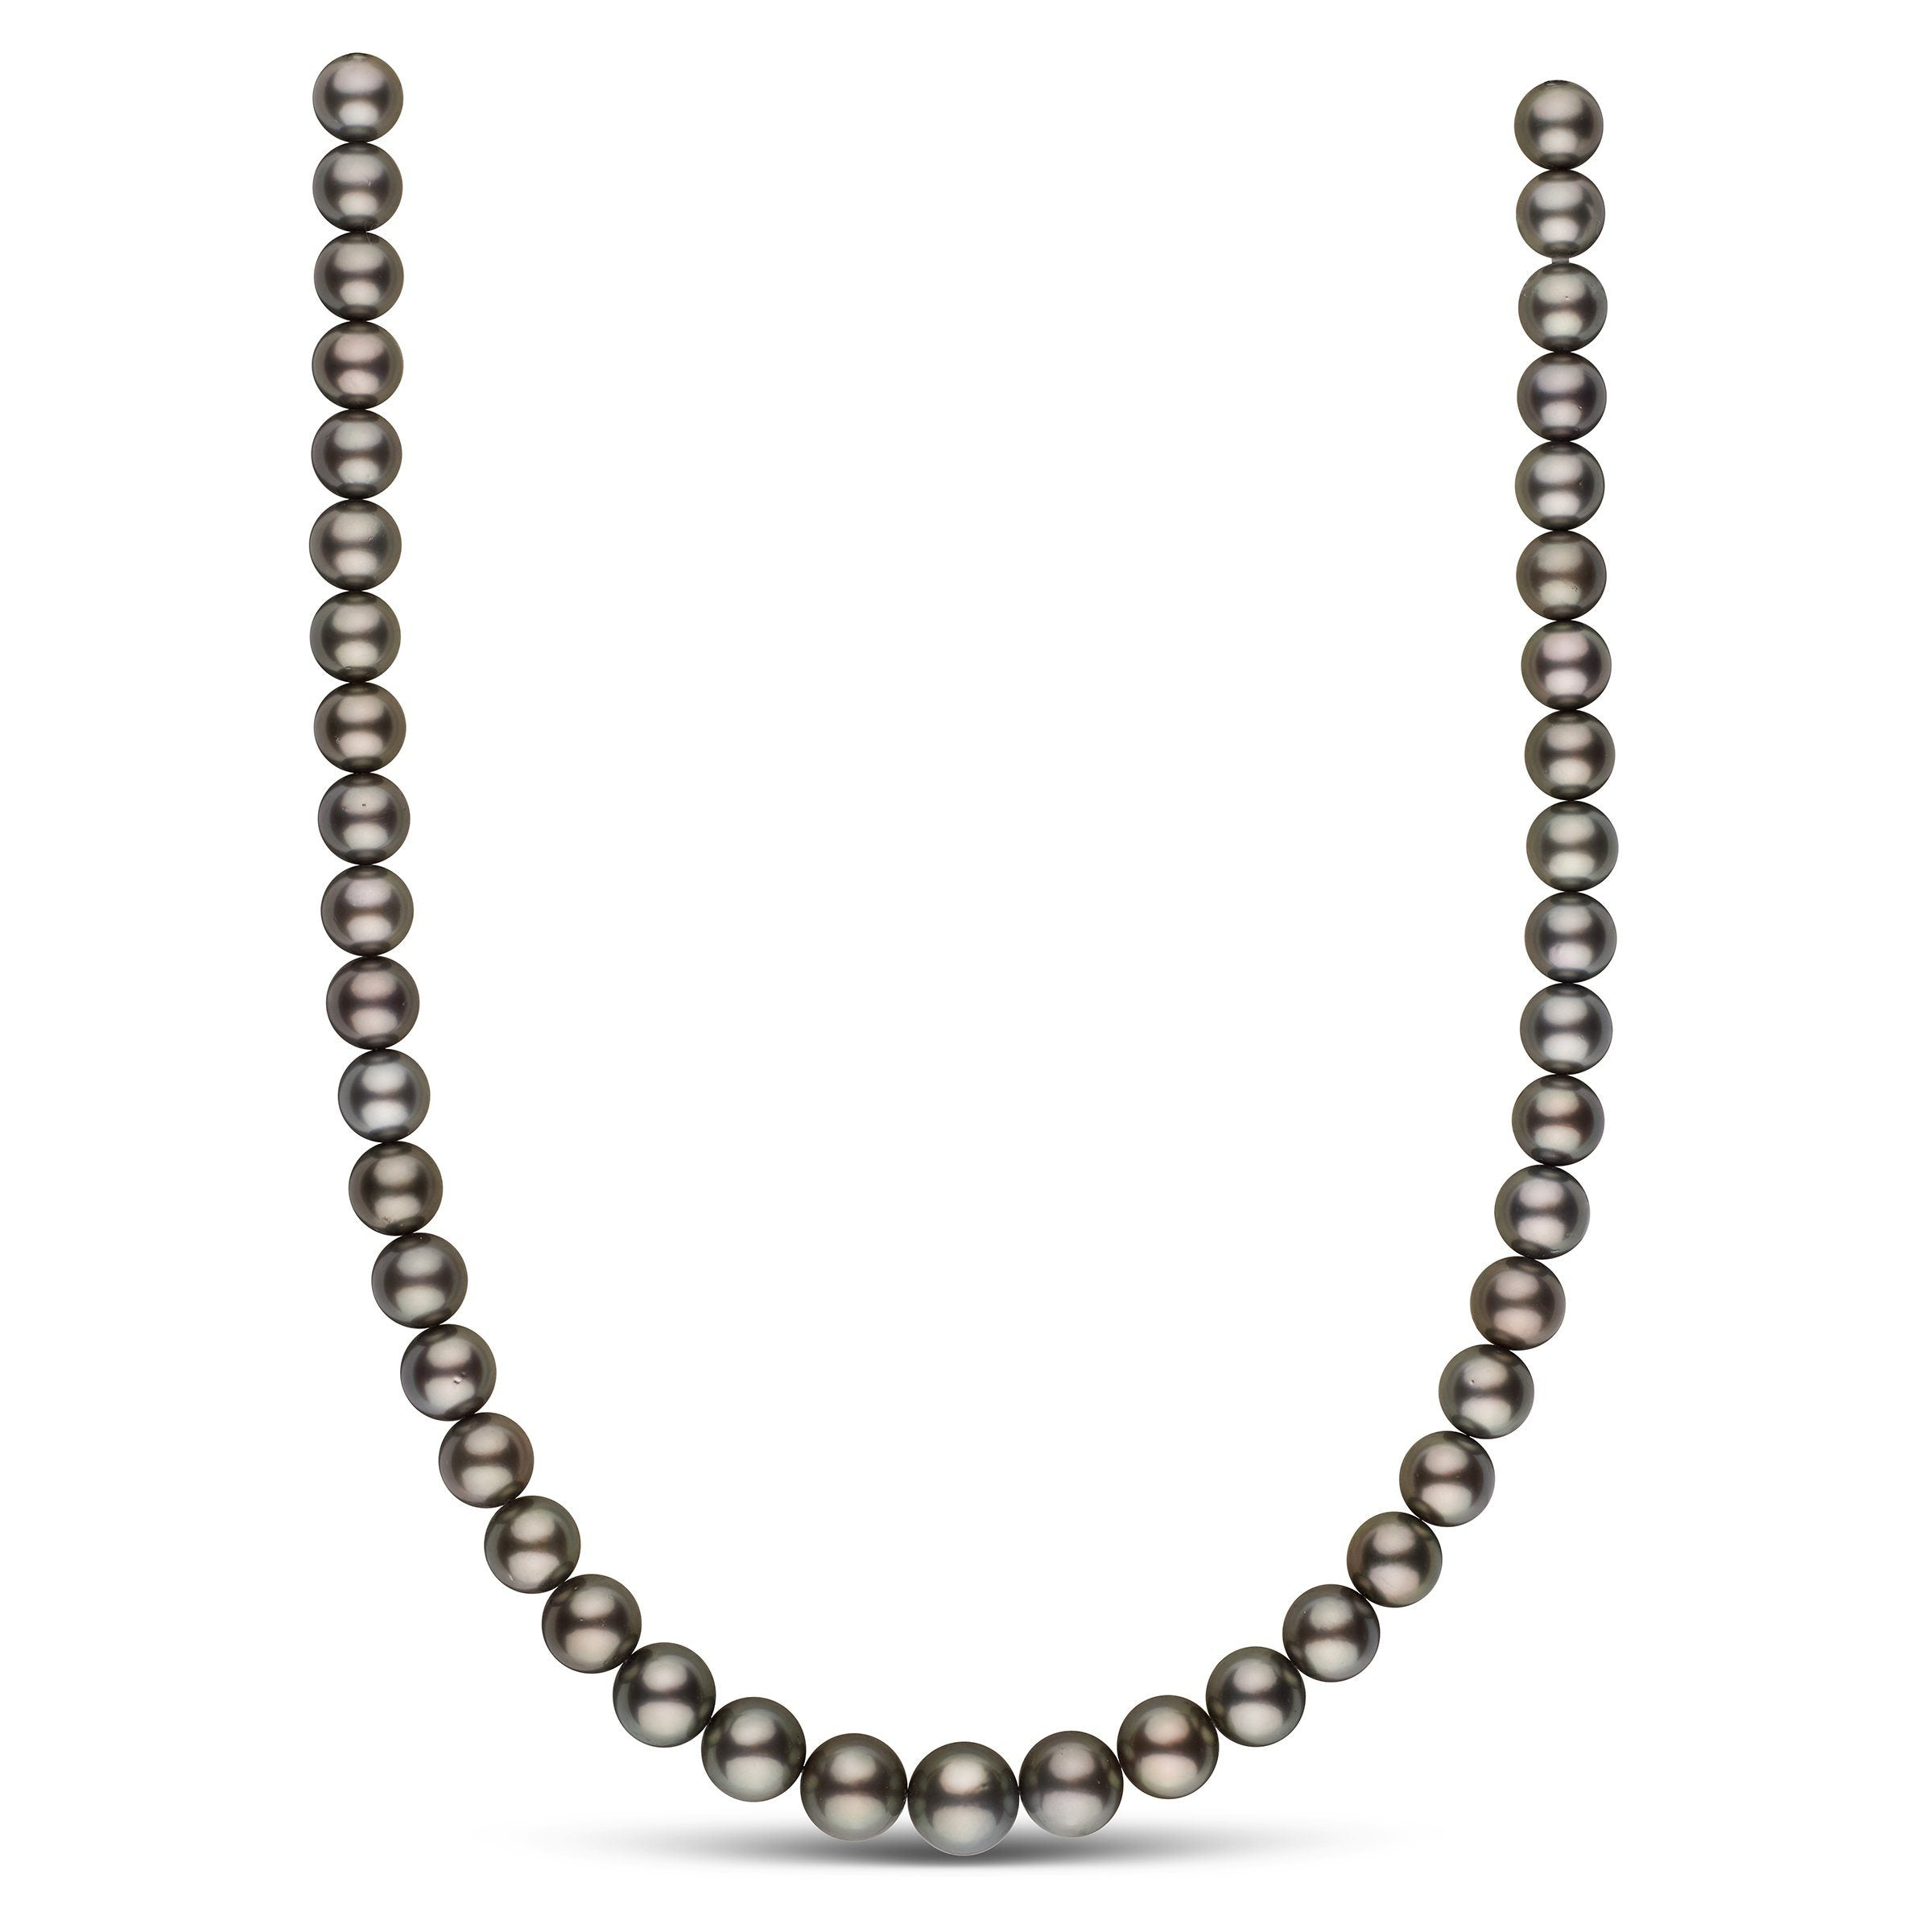 9.0-11.2 mm AA+/AAA Tahitian Round Pearl Necklace